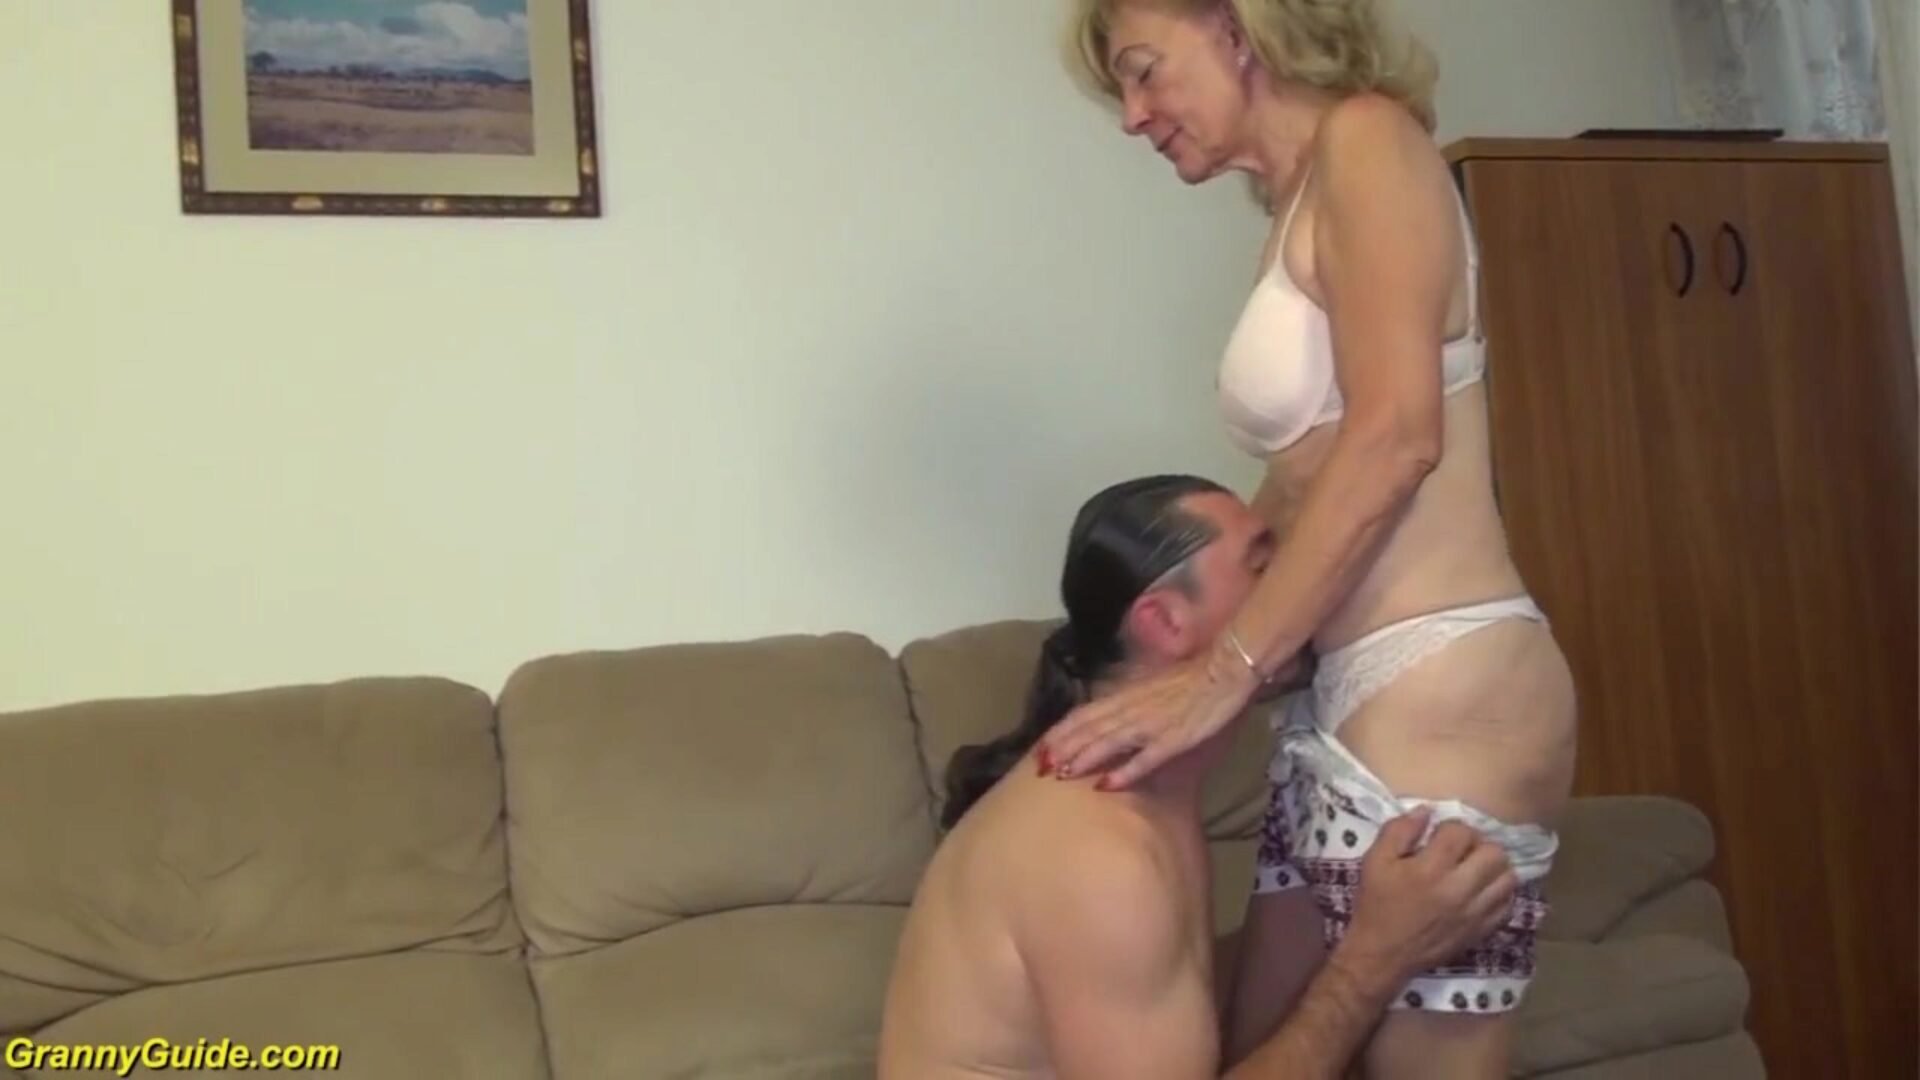 81 years older mamma group-fucked by sonnie bizarre lascivious 81 years elder slim grandmother with saggy scoops receives rough big cock pumped by her sonnie